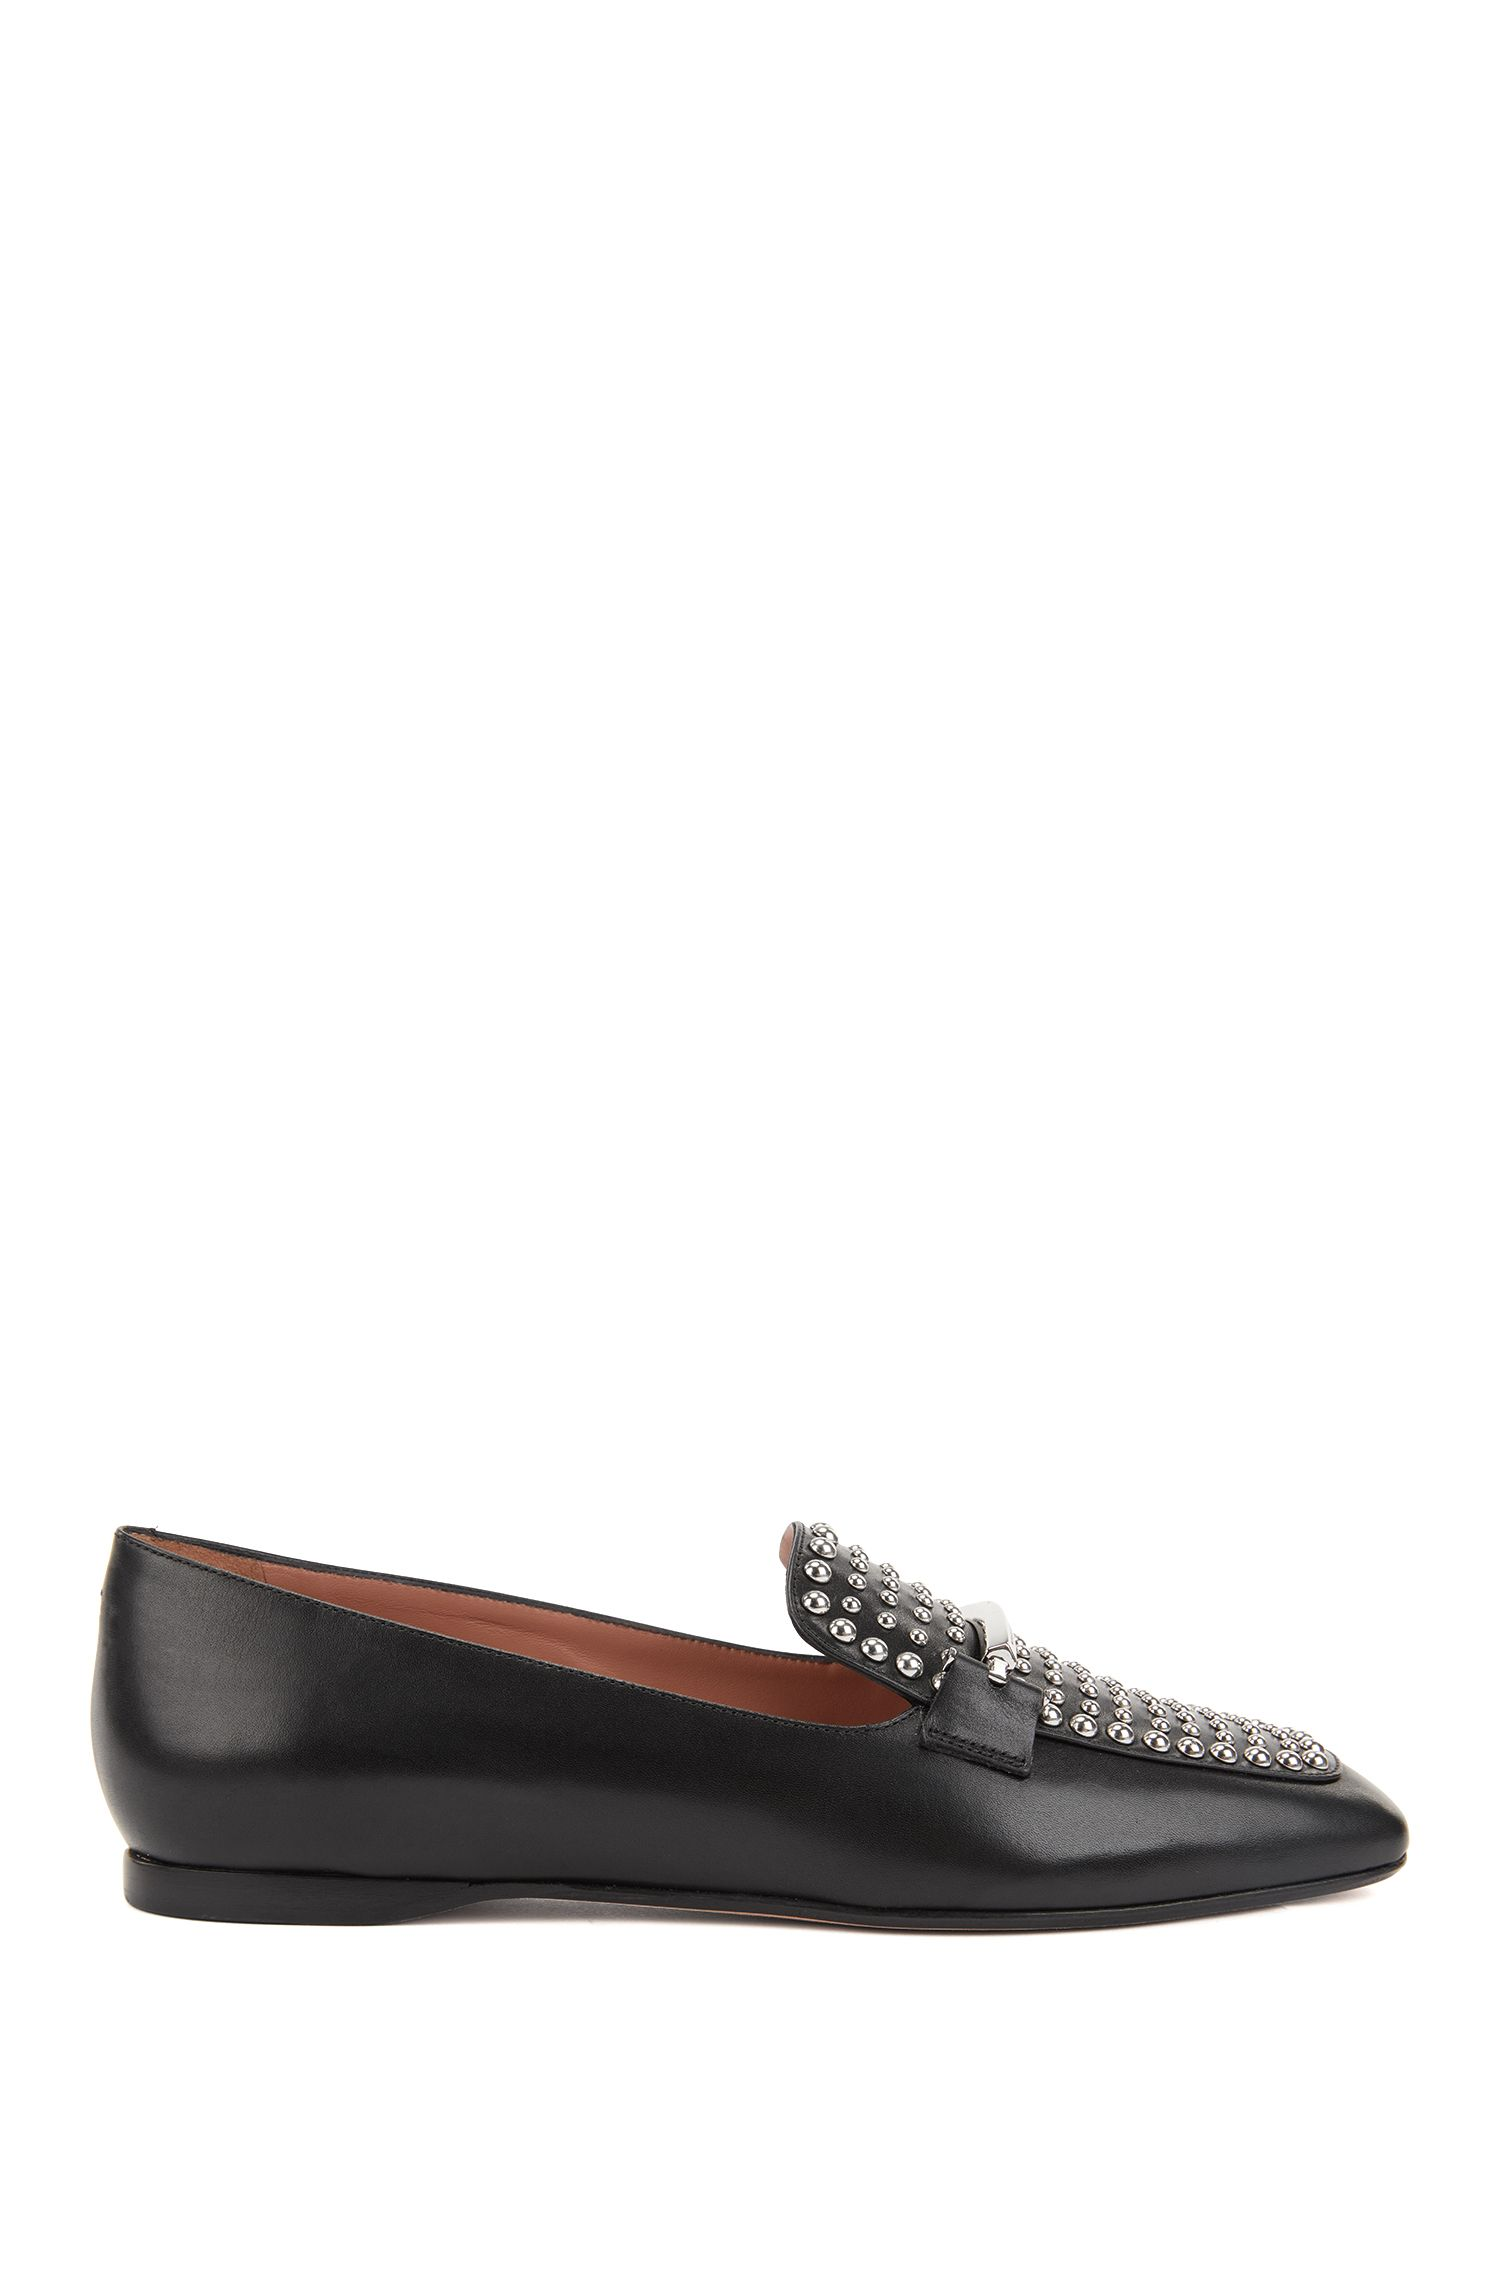 Italian calf-leather loafers with stud detailing